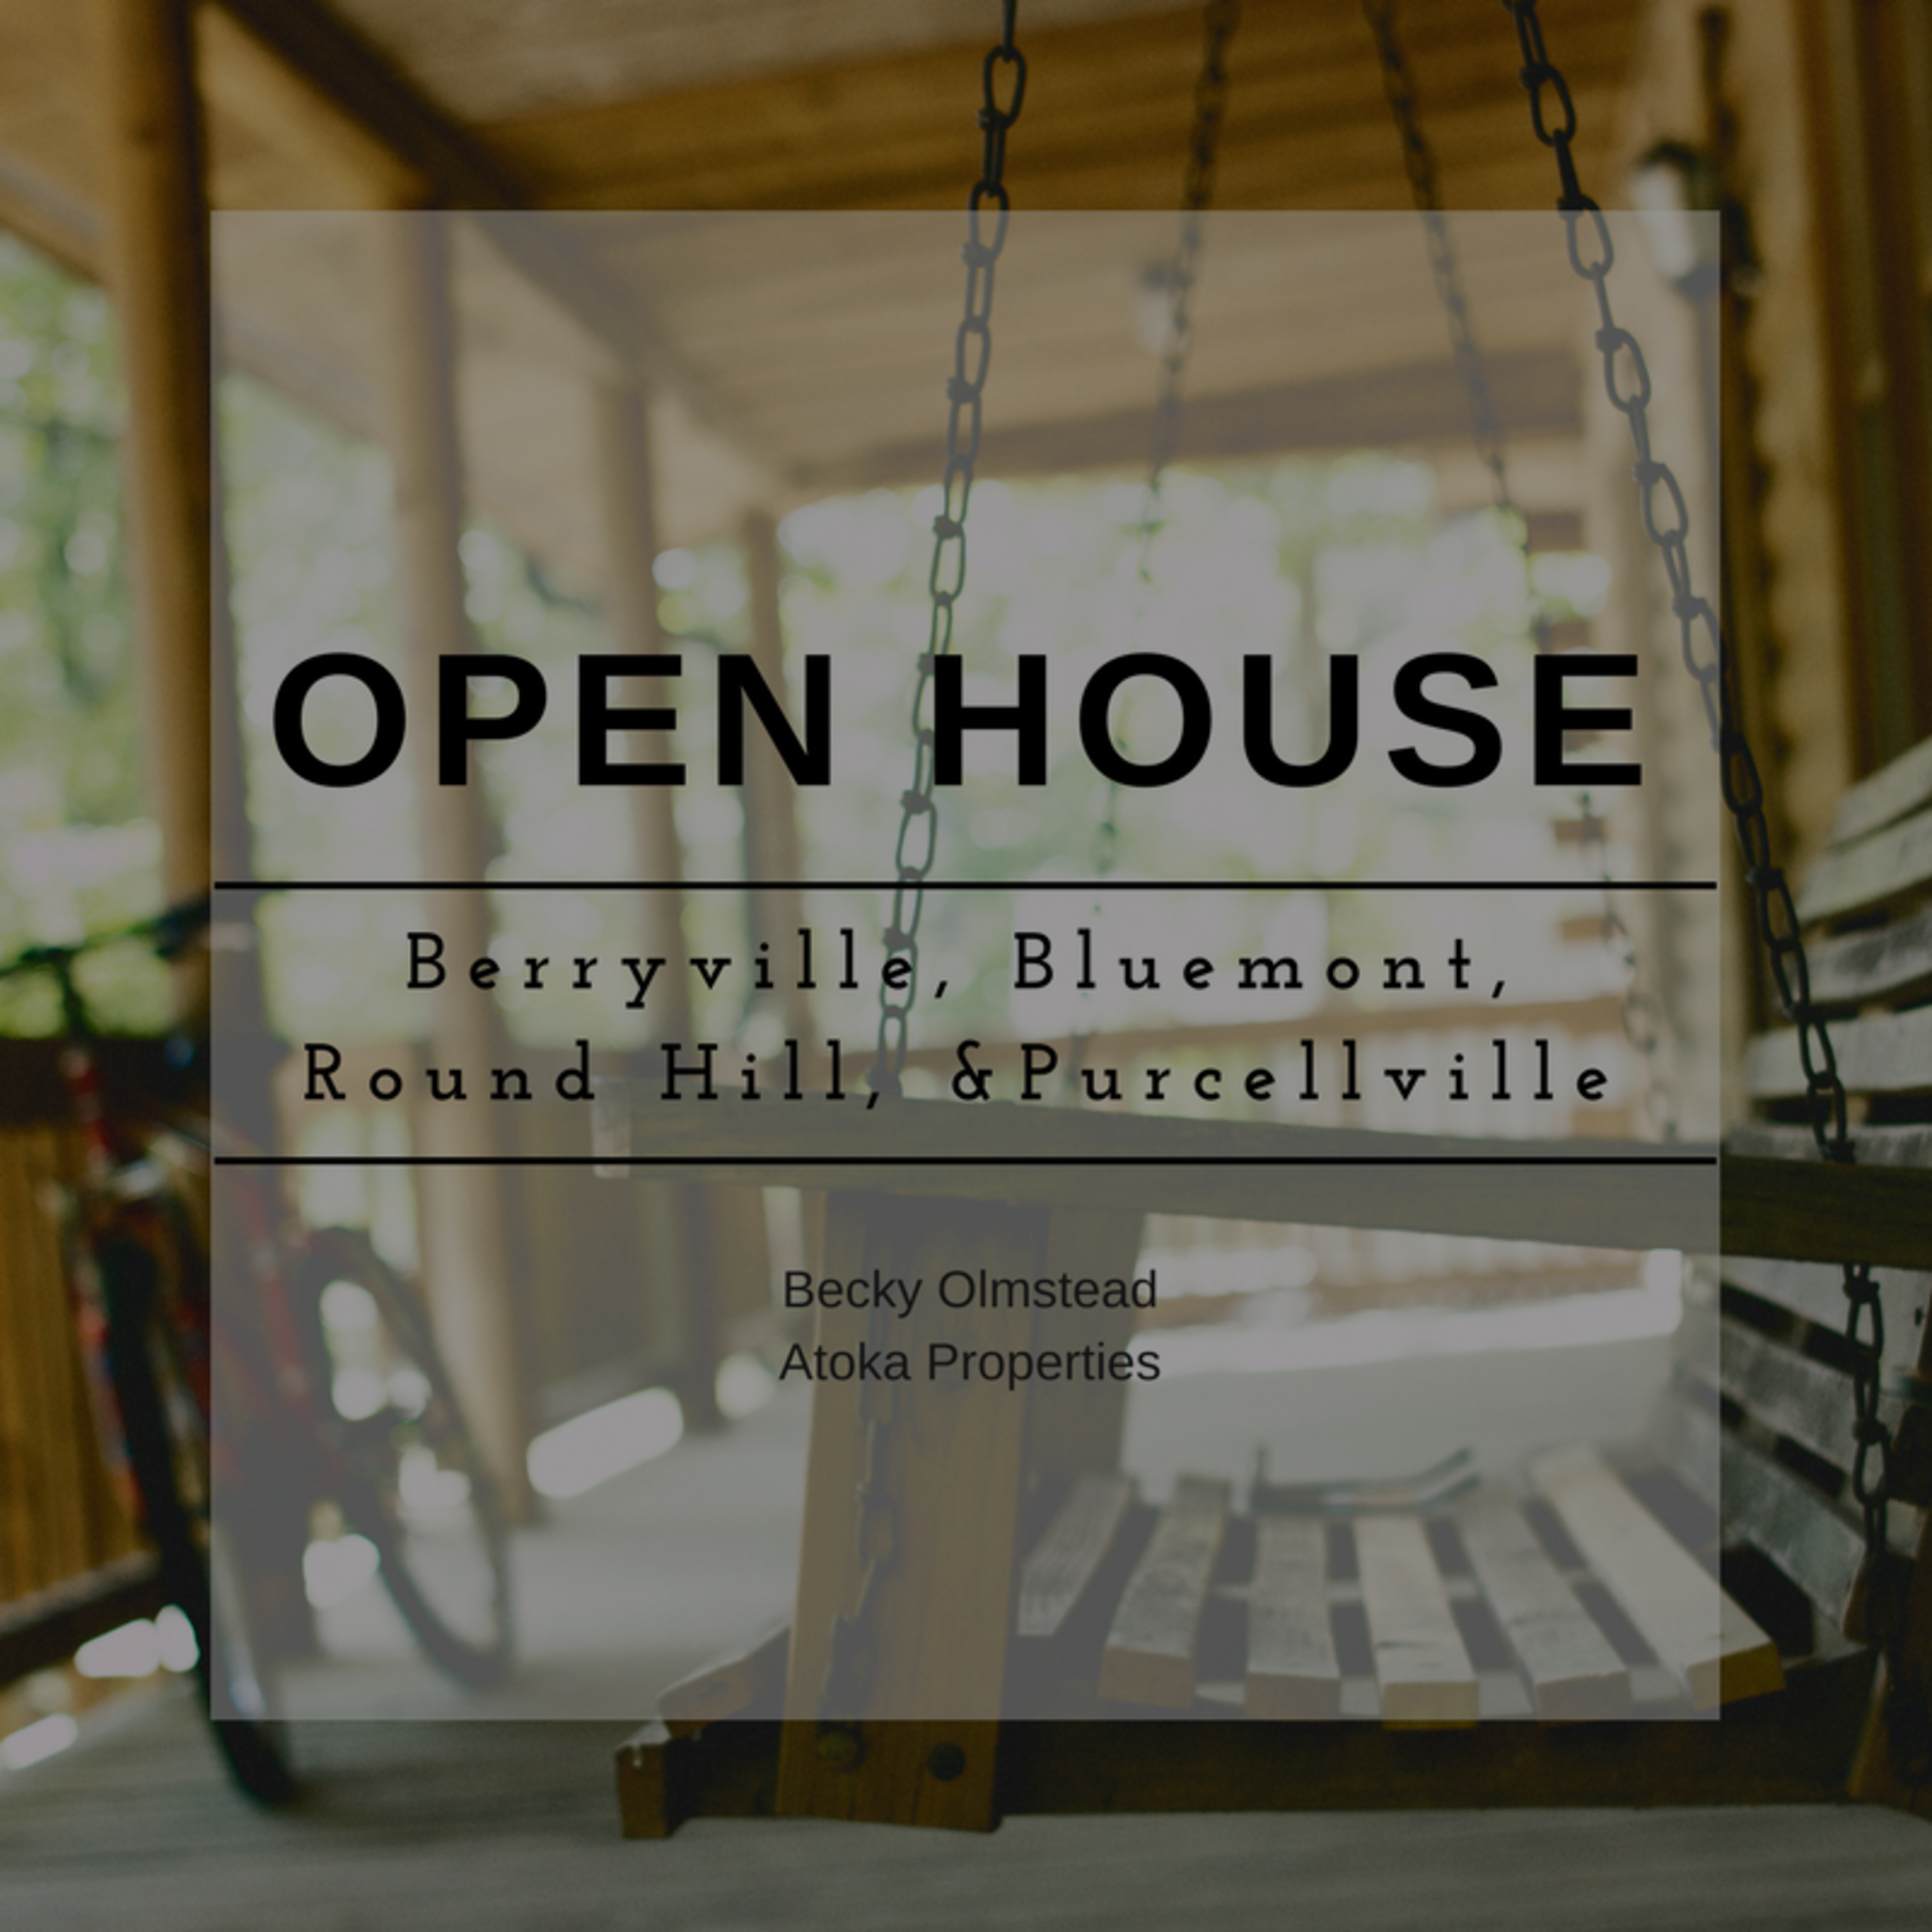 OPEN HOUSE LIST 1/20/18 – 1/21/18